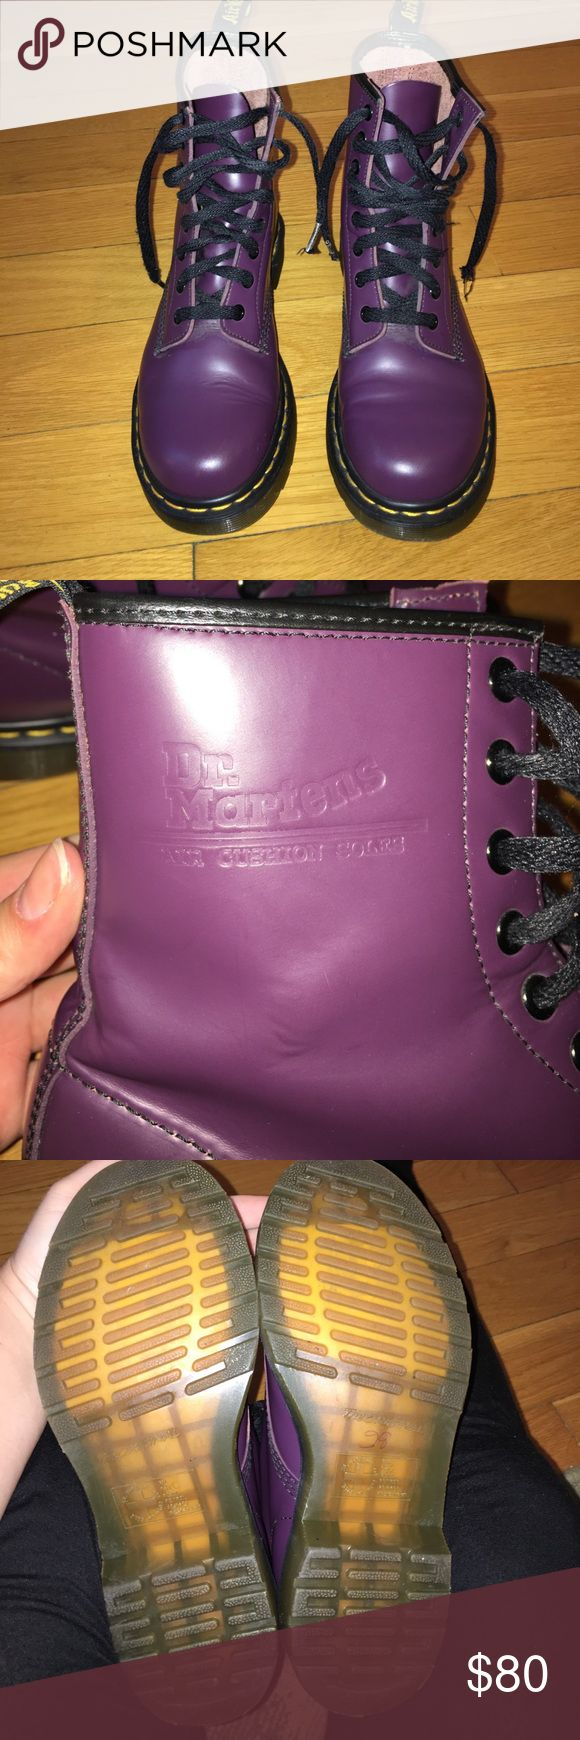 Purple Doc Martens Purple Doc Martens!! Original style- air wair with bouncing soles. Amazing condition- shows almost no signs of wear. No scuffs at all, the soles are in excellent condition, yellow stitching around the shoe in pristine condition. Only thing these shoes need is a new pair of shoe laces! Color looks like a darker eggplant color. Such a unique color and hard to find. Size 7 US, size 38 EU. These retail new for $140! Dr. Martens Shoes Combat & Moto Boots